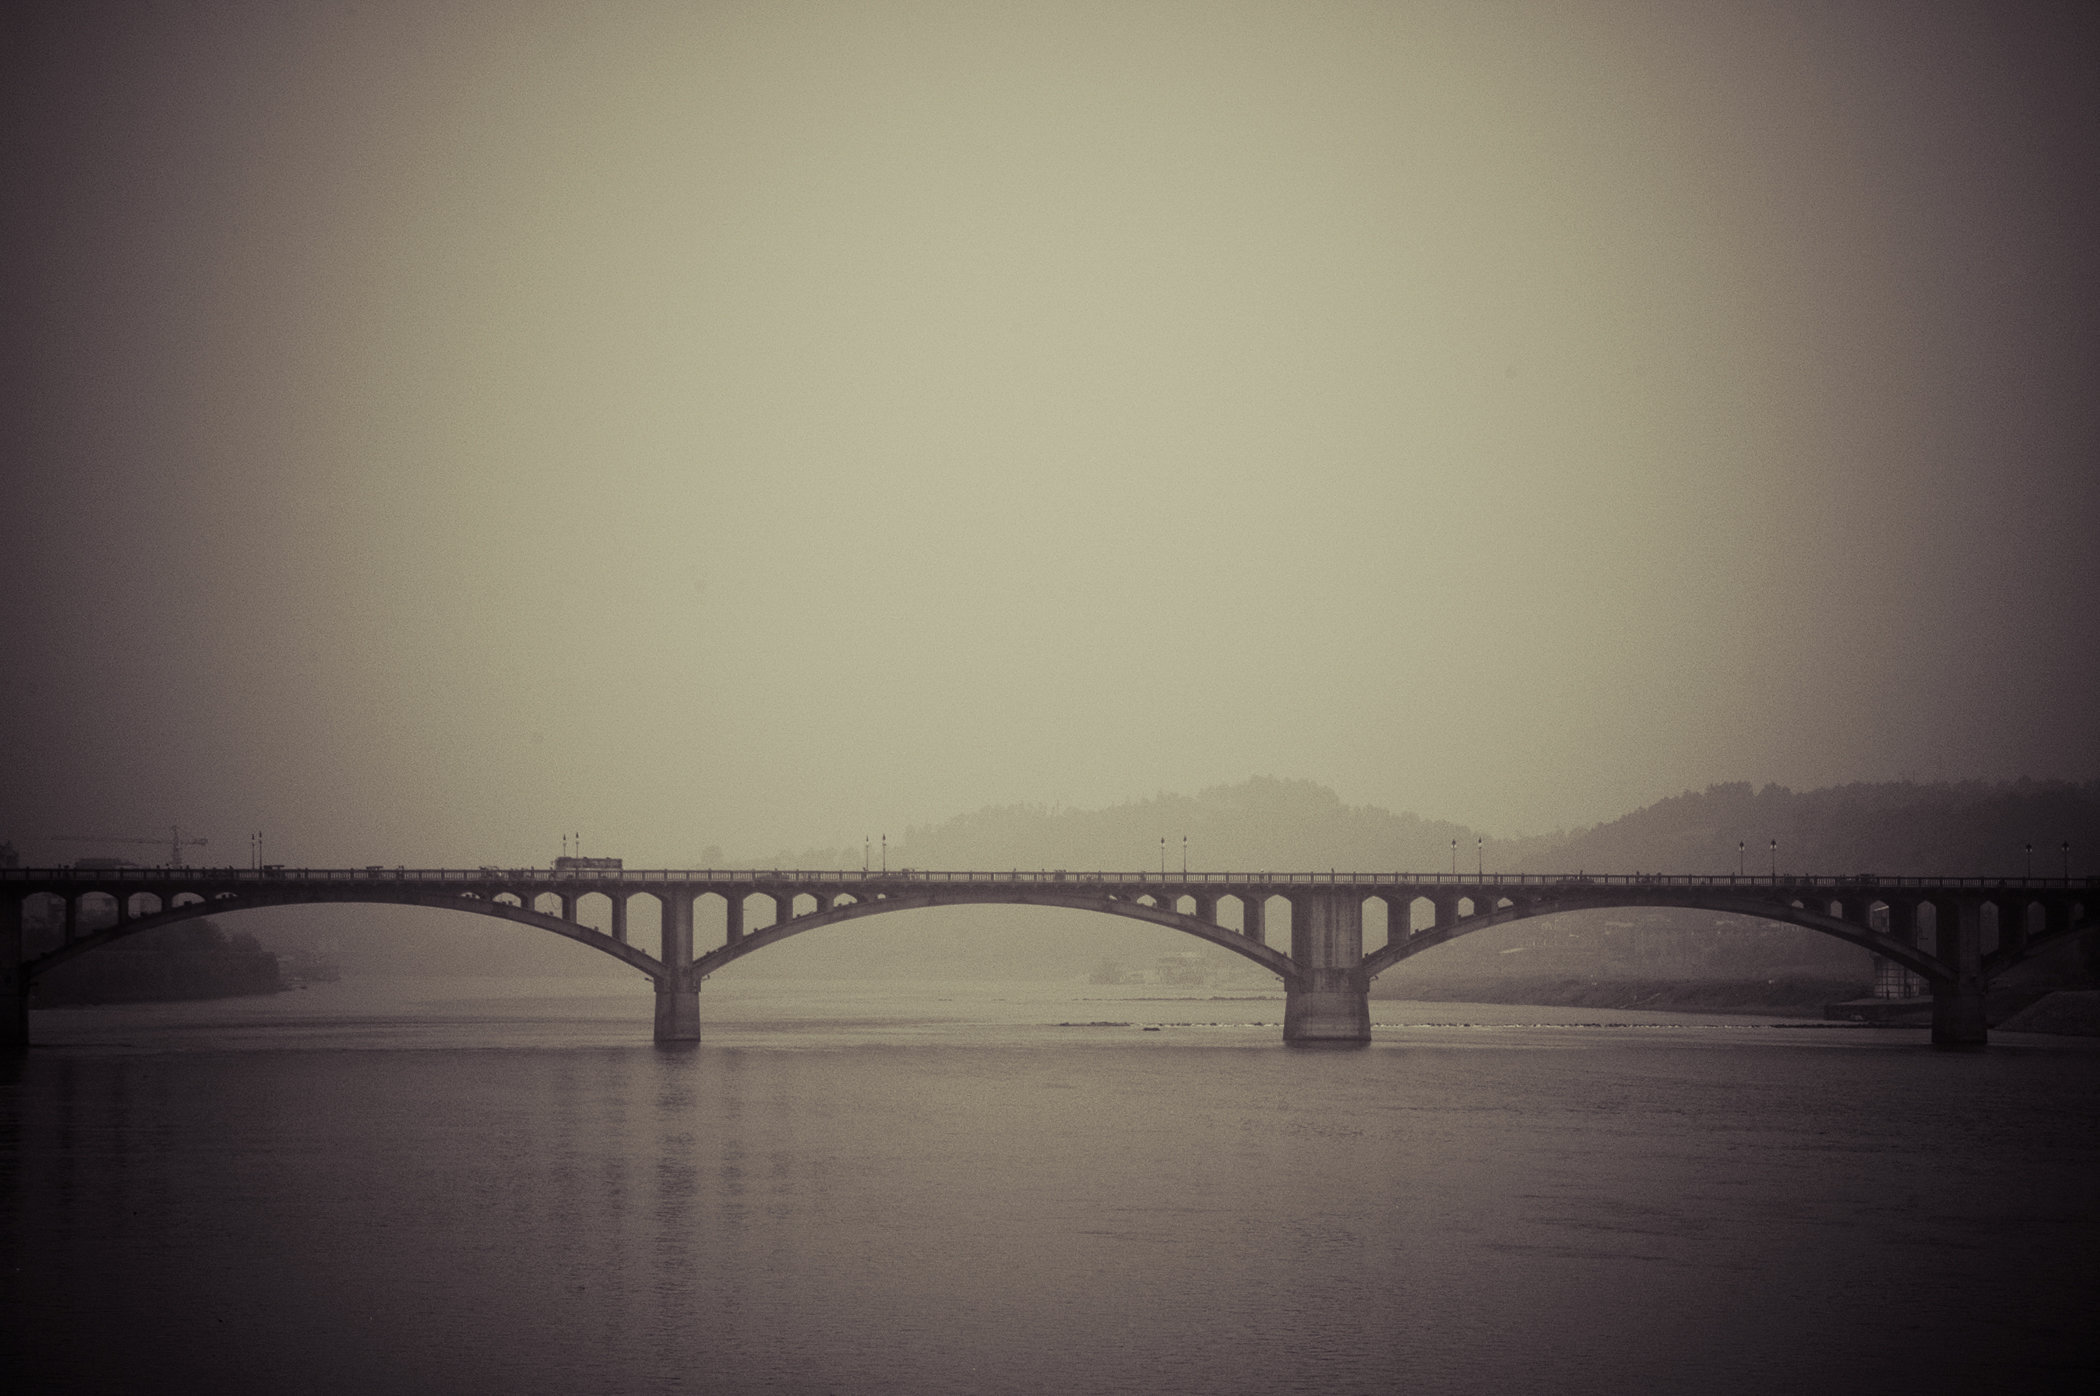 Bridge to China